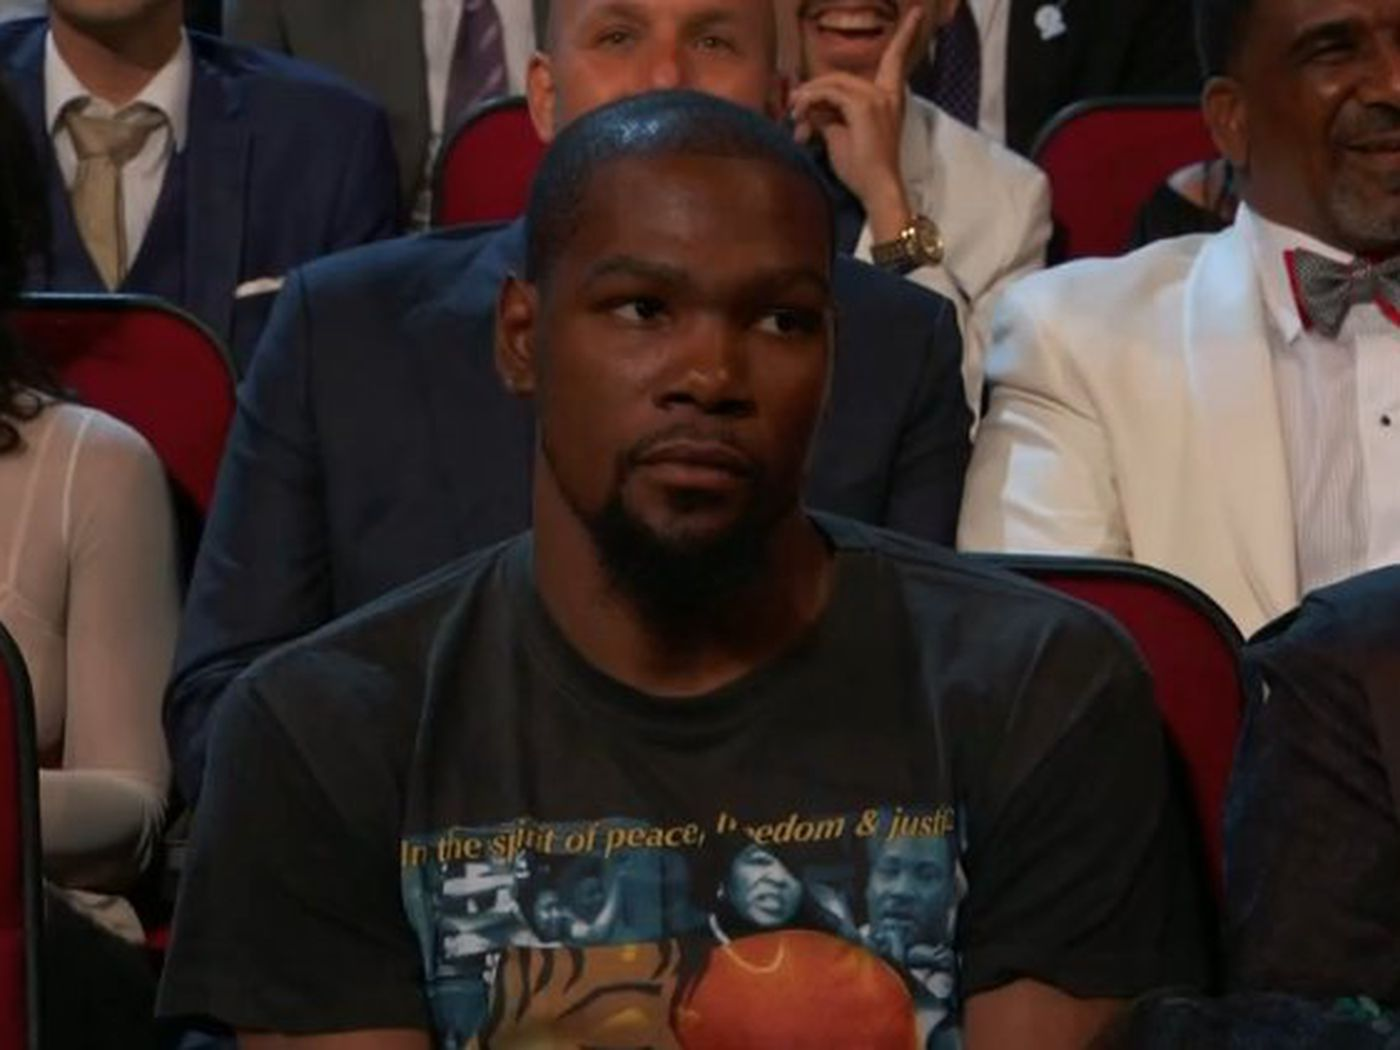 df6b429b3ac3 Kevin Durant was not thrilled when Peyton Manning made a joke about him at  the ESPYs - SBNation.com